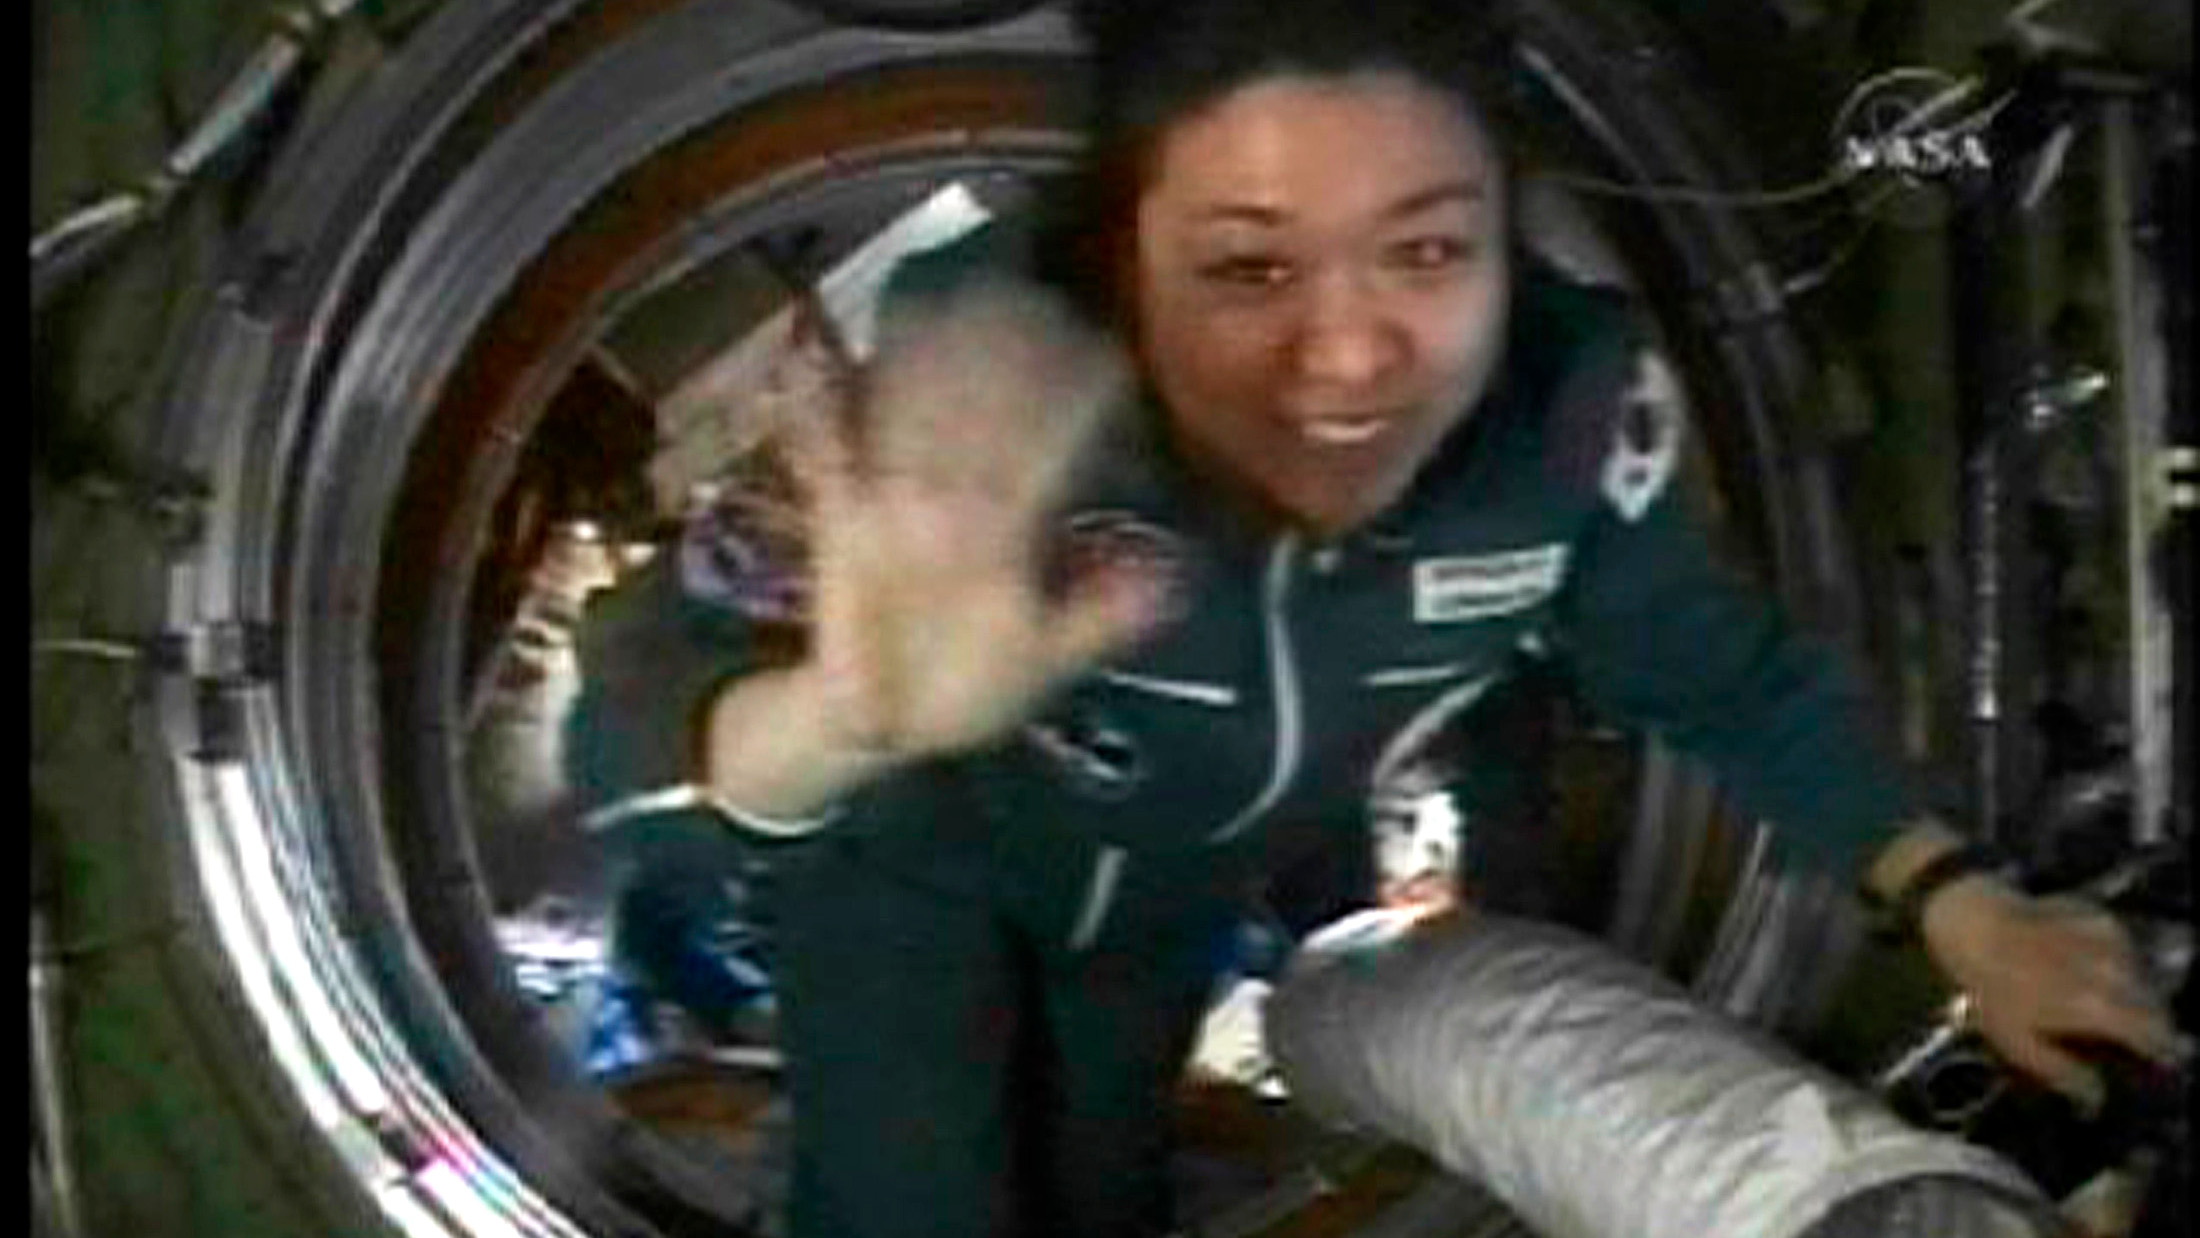 Spaceflight participant So-yeon Yi of Korea enters the International Space Station in this image from NASA TV April 10, 2008. Spaceflight participant Yi will return to Earth April 19th with Expedition 16 crew members, Commander Peggy Whitson and Flight Engineer Yuri Malenchenko.